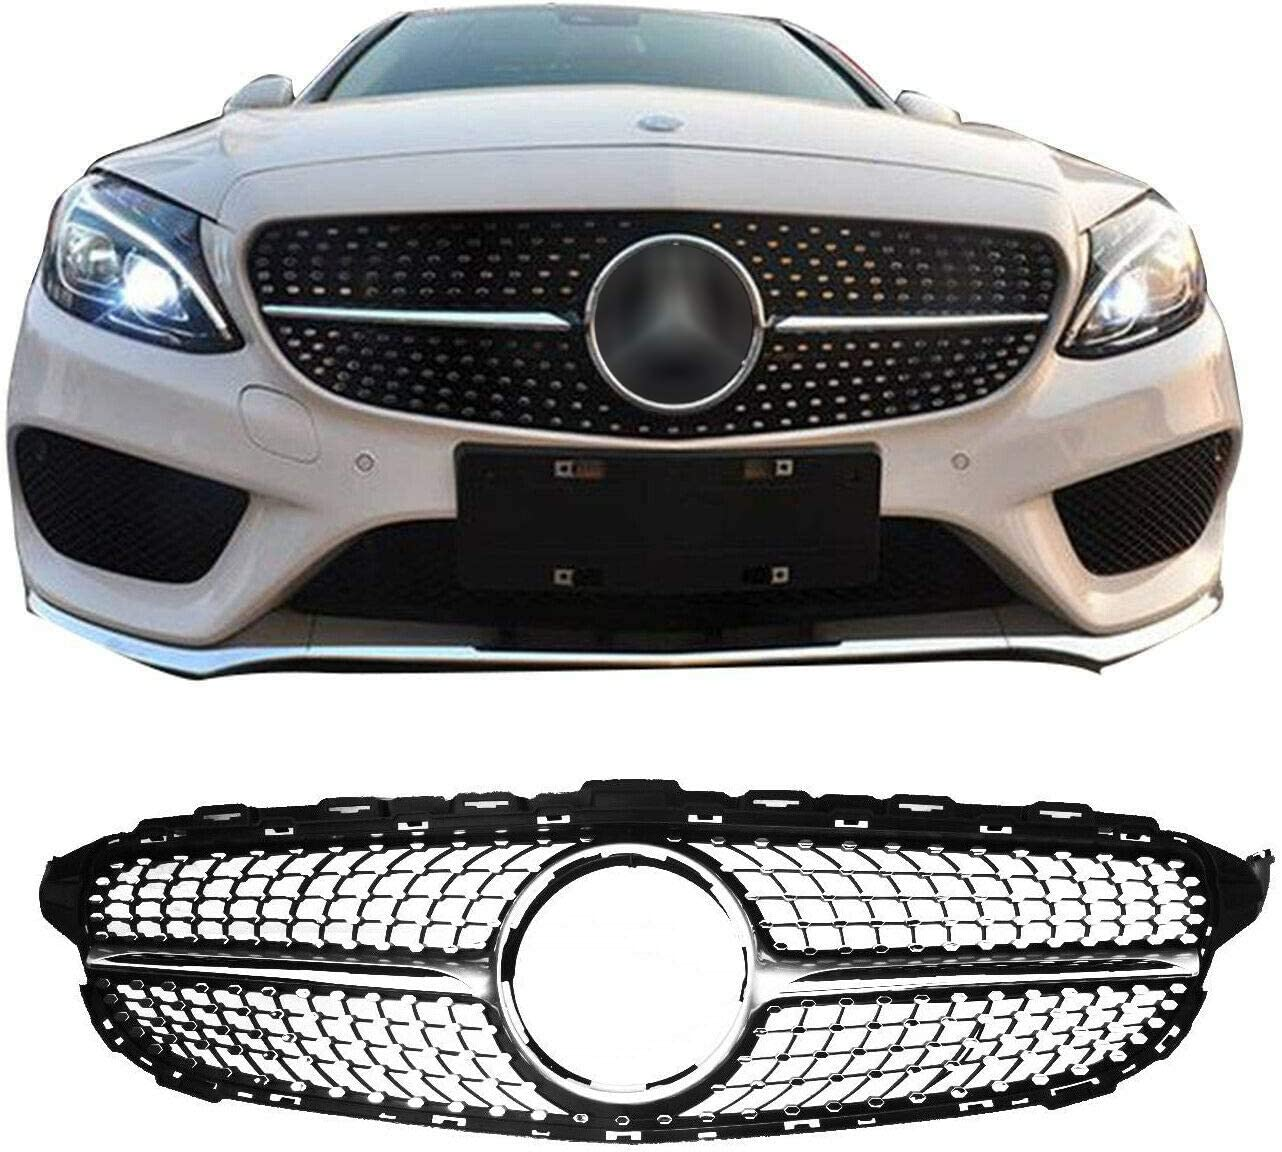 AUTOPA 2058881260 Diamond Radiator Milwaukee Low price Mall for Grille Mercedes Assembly